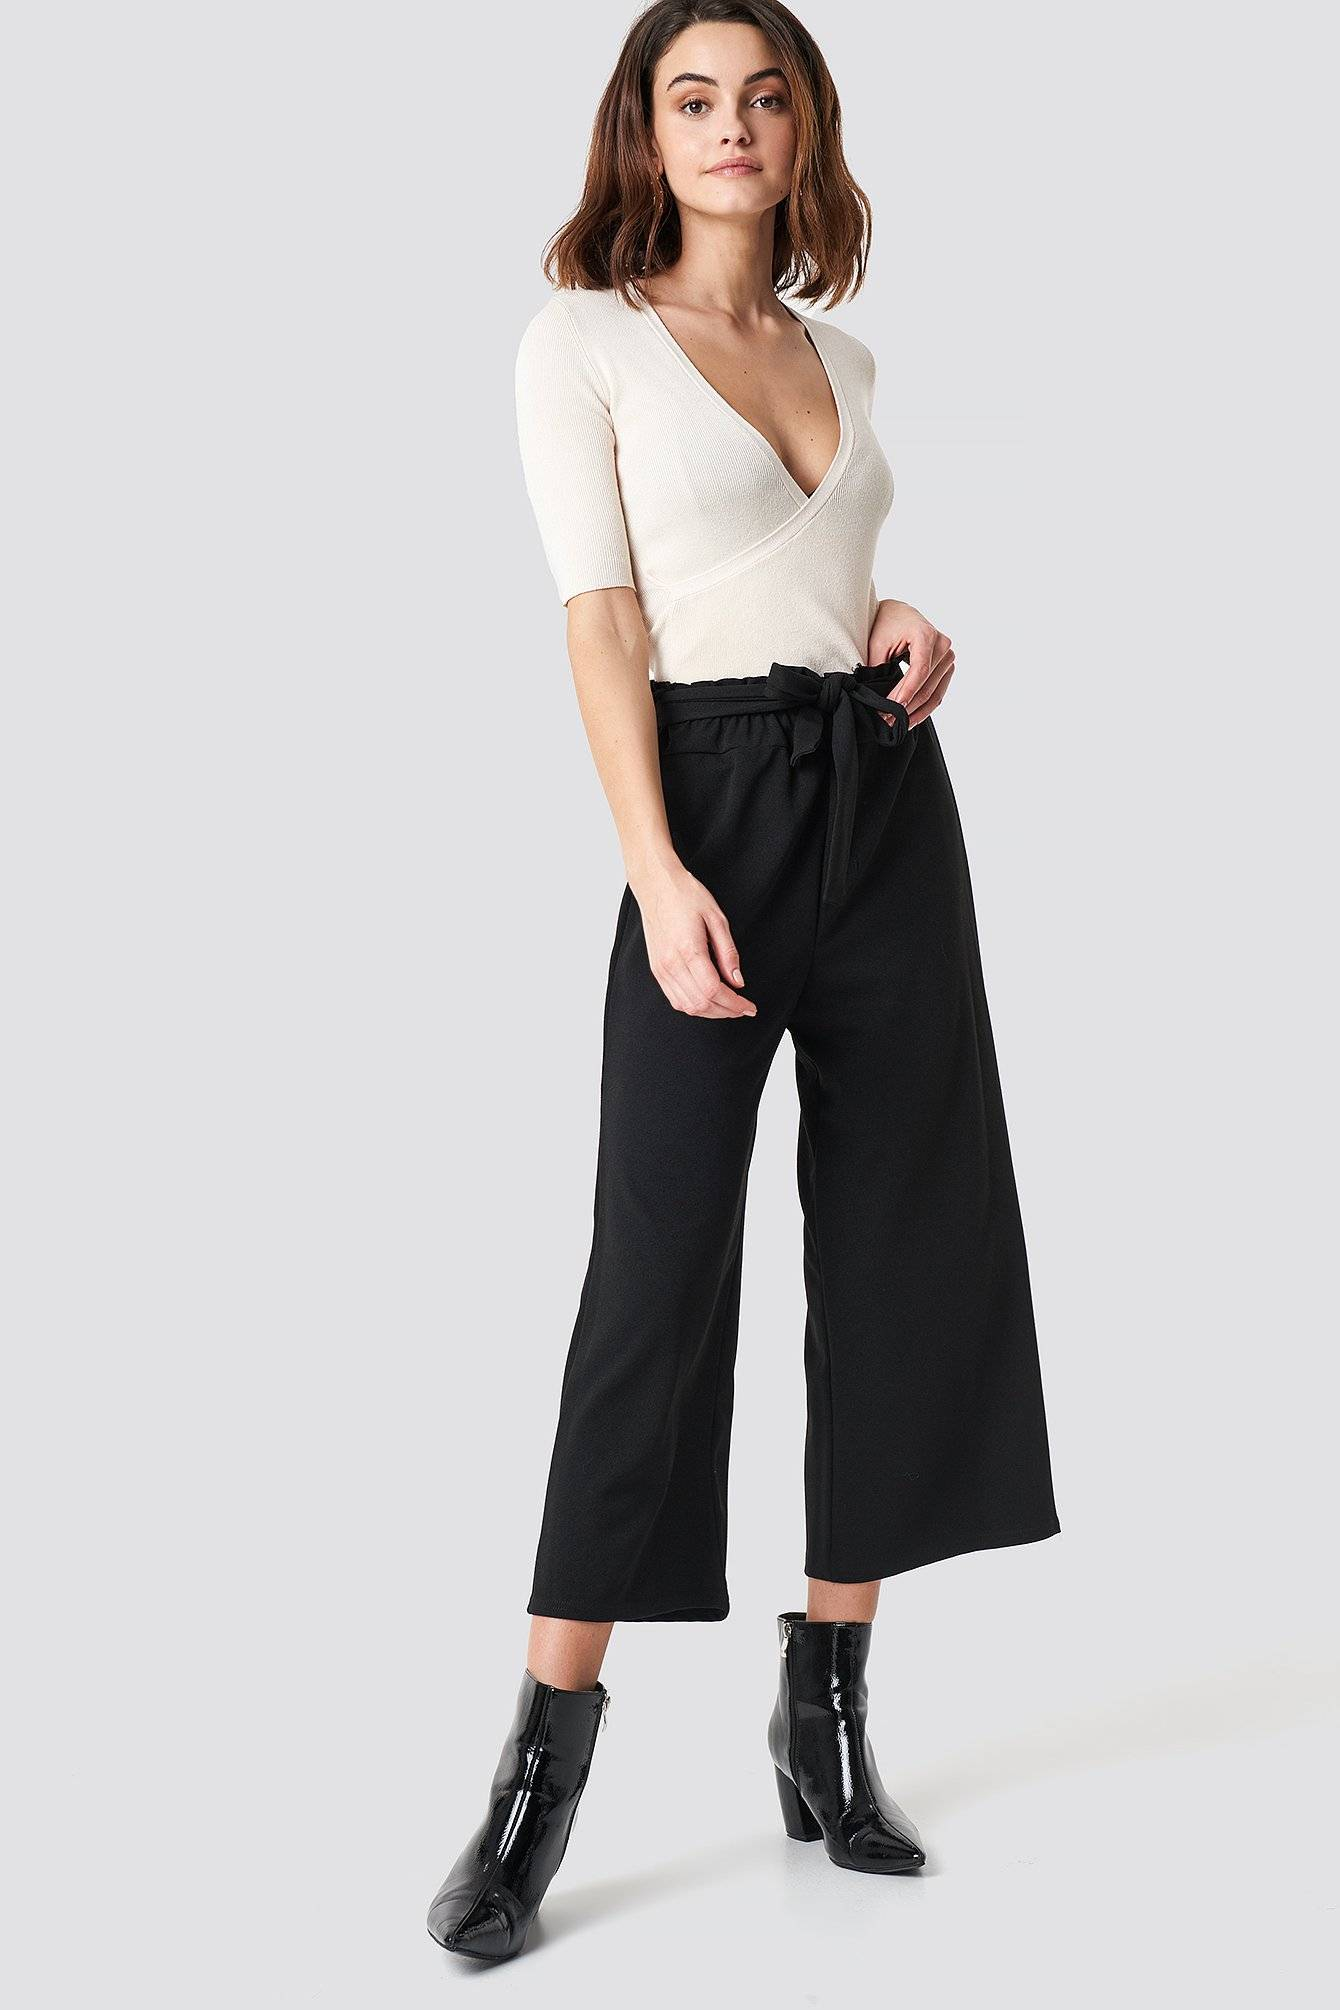 Sisters Point Noto Pants - Black  - Size: Small